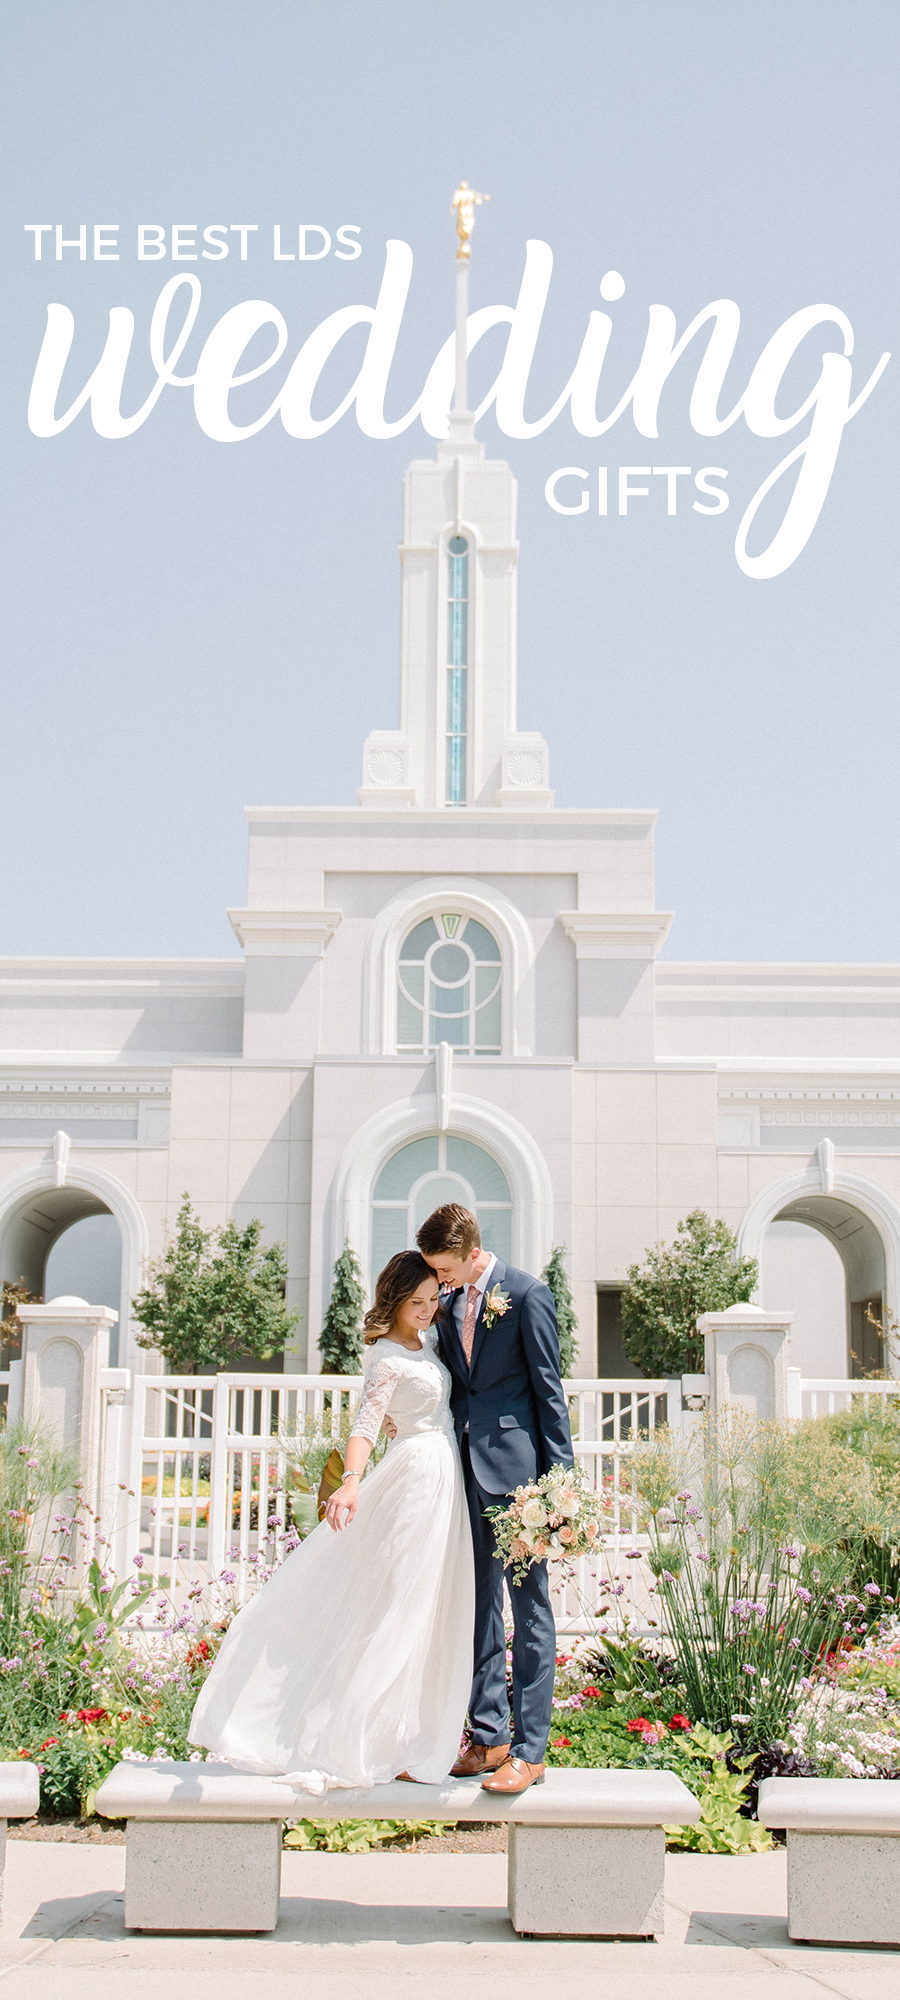 The Best Lds Wedding Gifts There Is Customized Lds Temple Jewelry Books Posters And More Lds Wedding Gift Lds Wedding Mormon Wedding